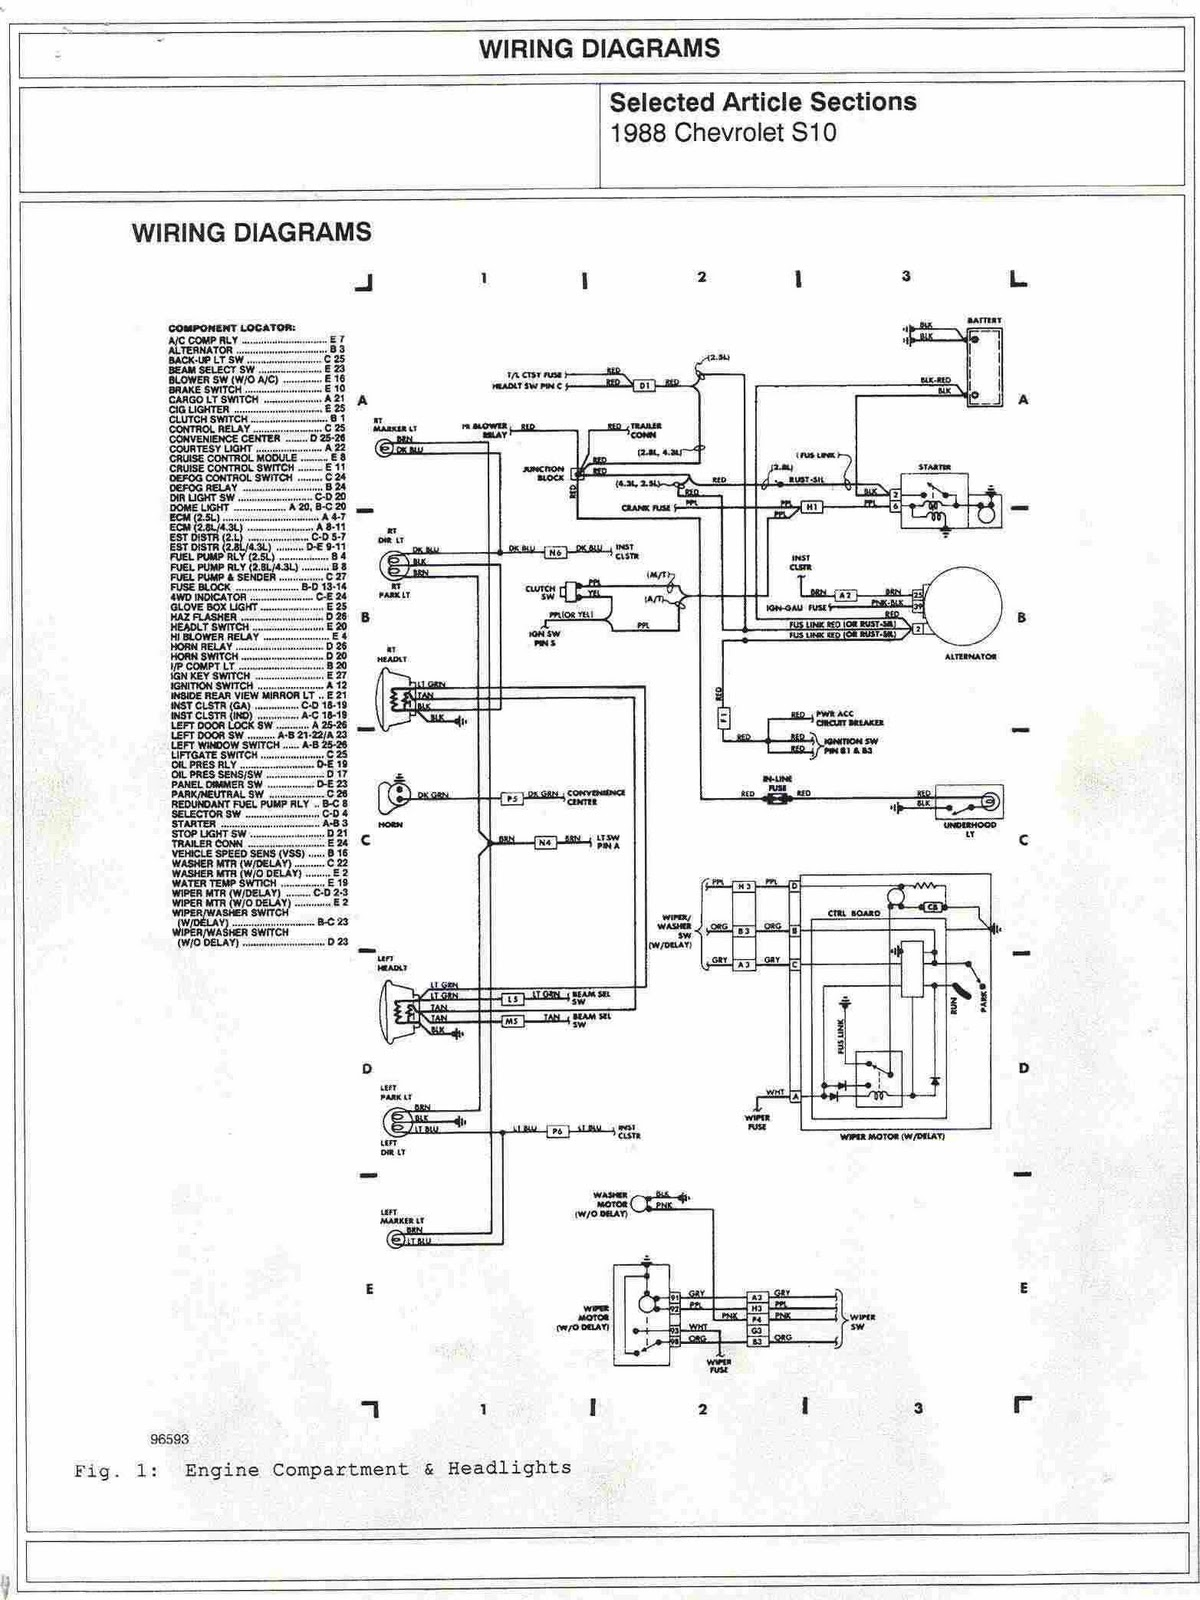 1988+Chevrolet+S10+Engine+Compartment+and+Headlights+Wiring+Diagrams 1988 chevy truck wiring diagram truck wiring schematics \u2022 wiring 1990 Chevy Camaro Wiring Diagram at soozxer.org